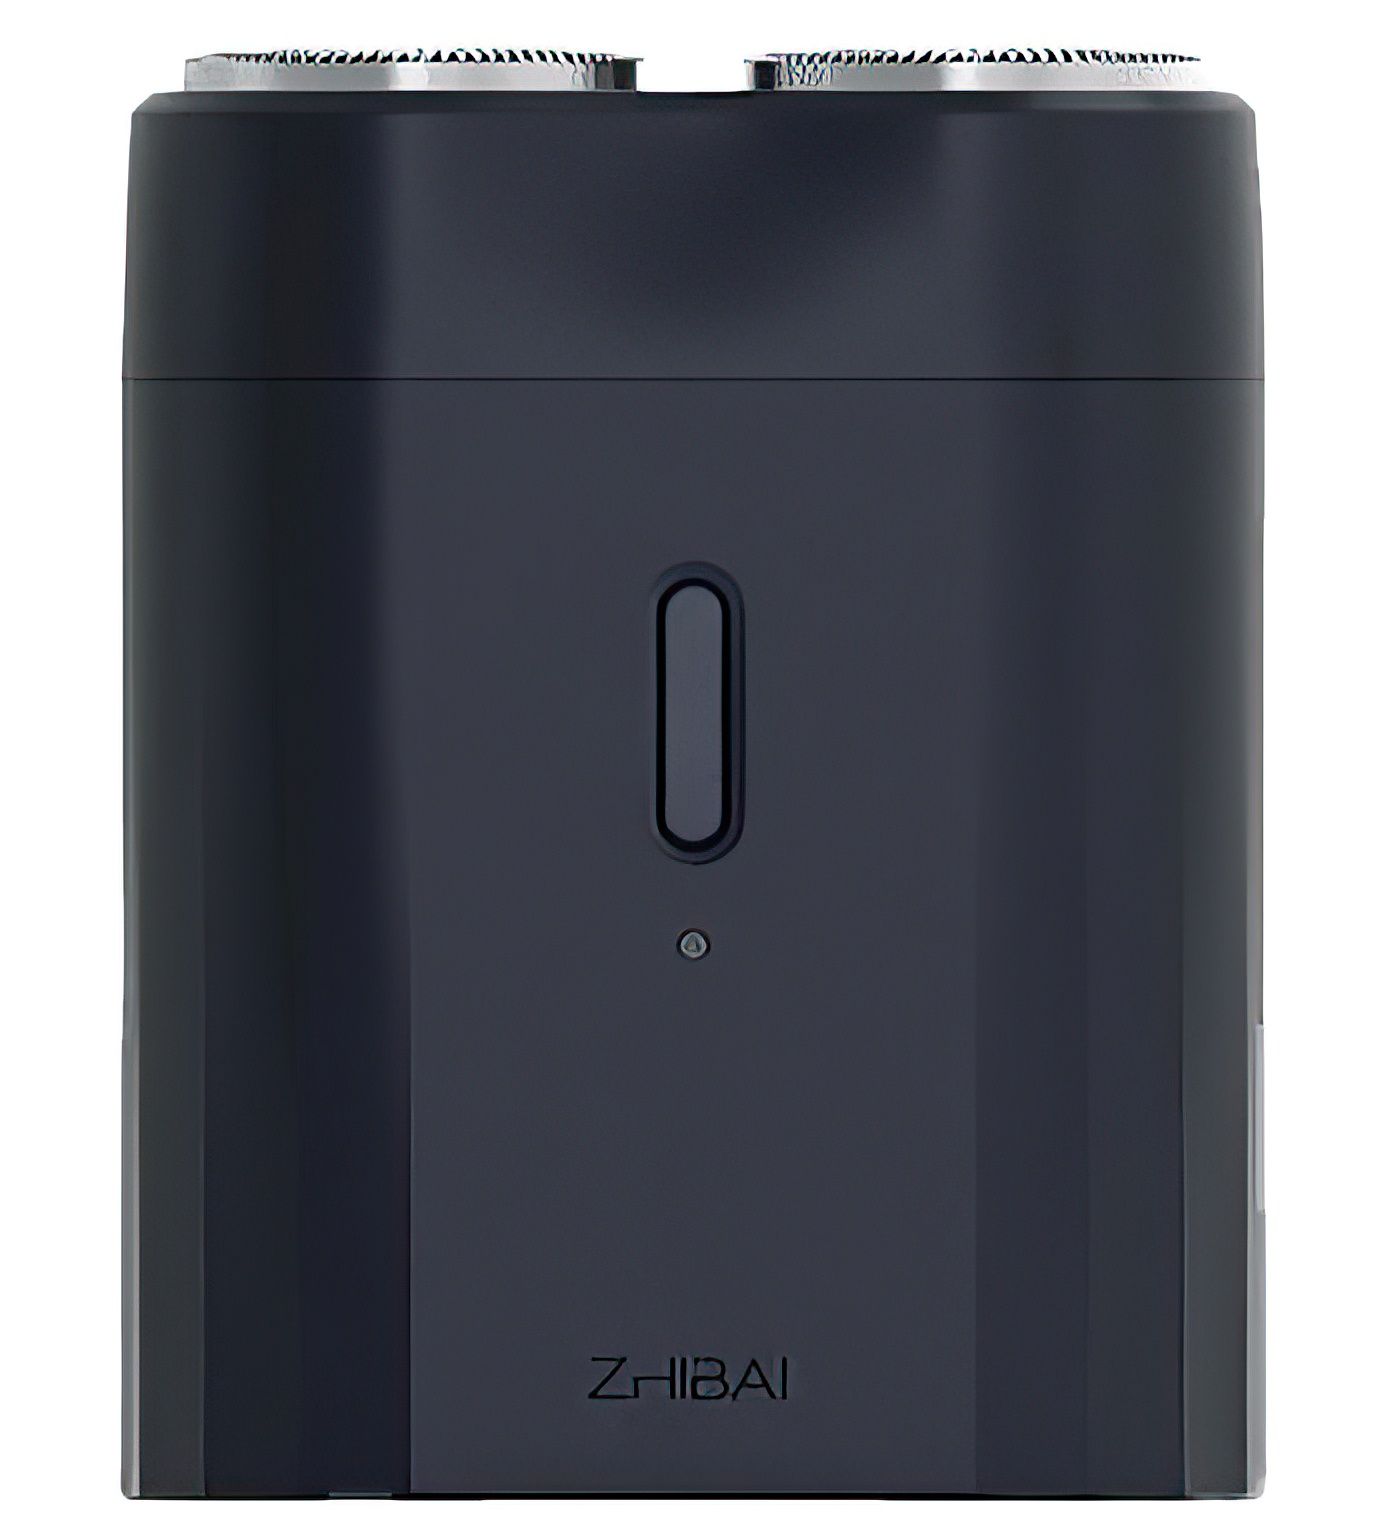 Xiaomi Zhibai Mini Washed Shaver Black